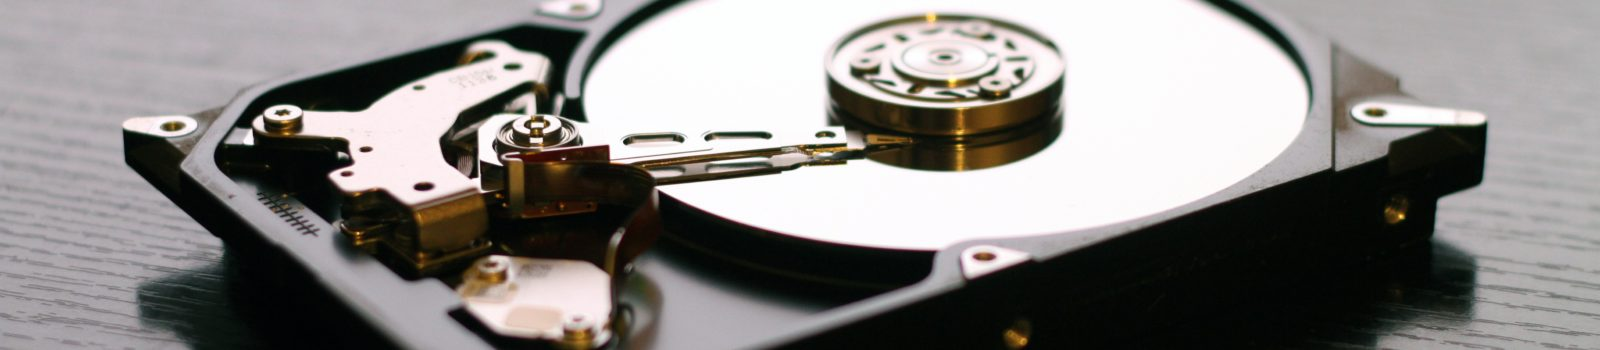 Sistemi di backup e disaster recovery